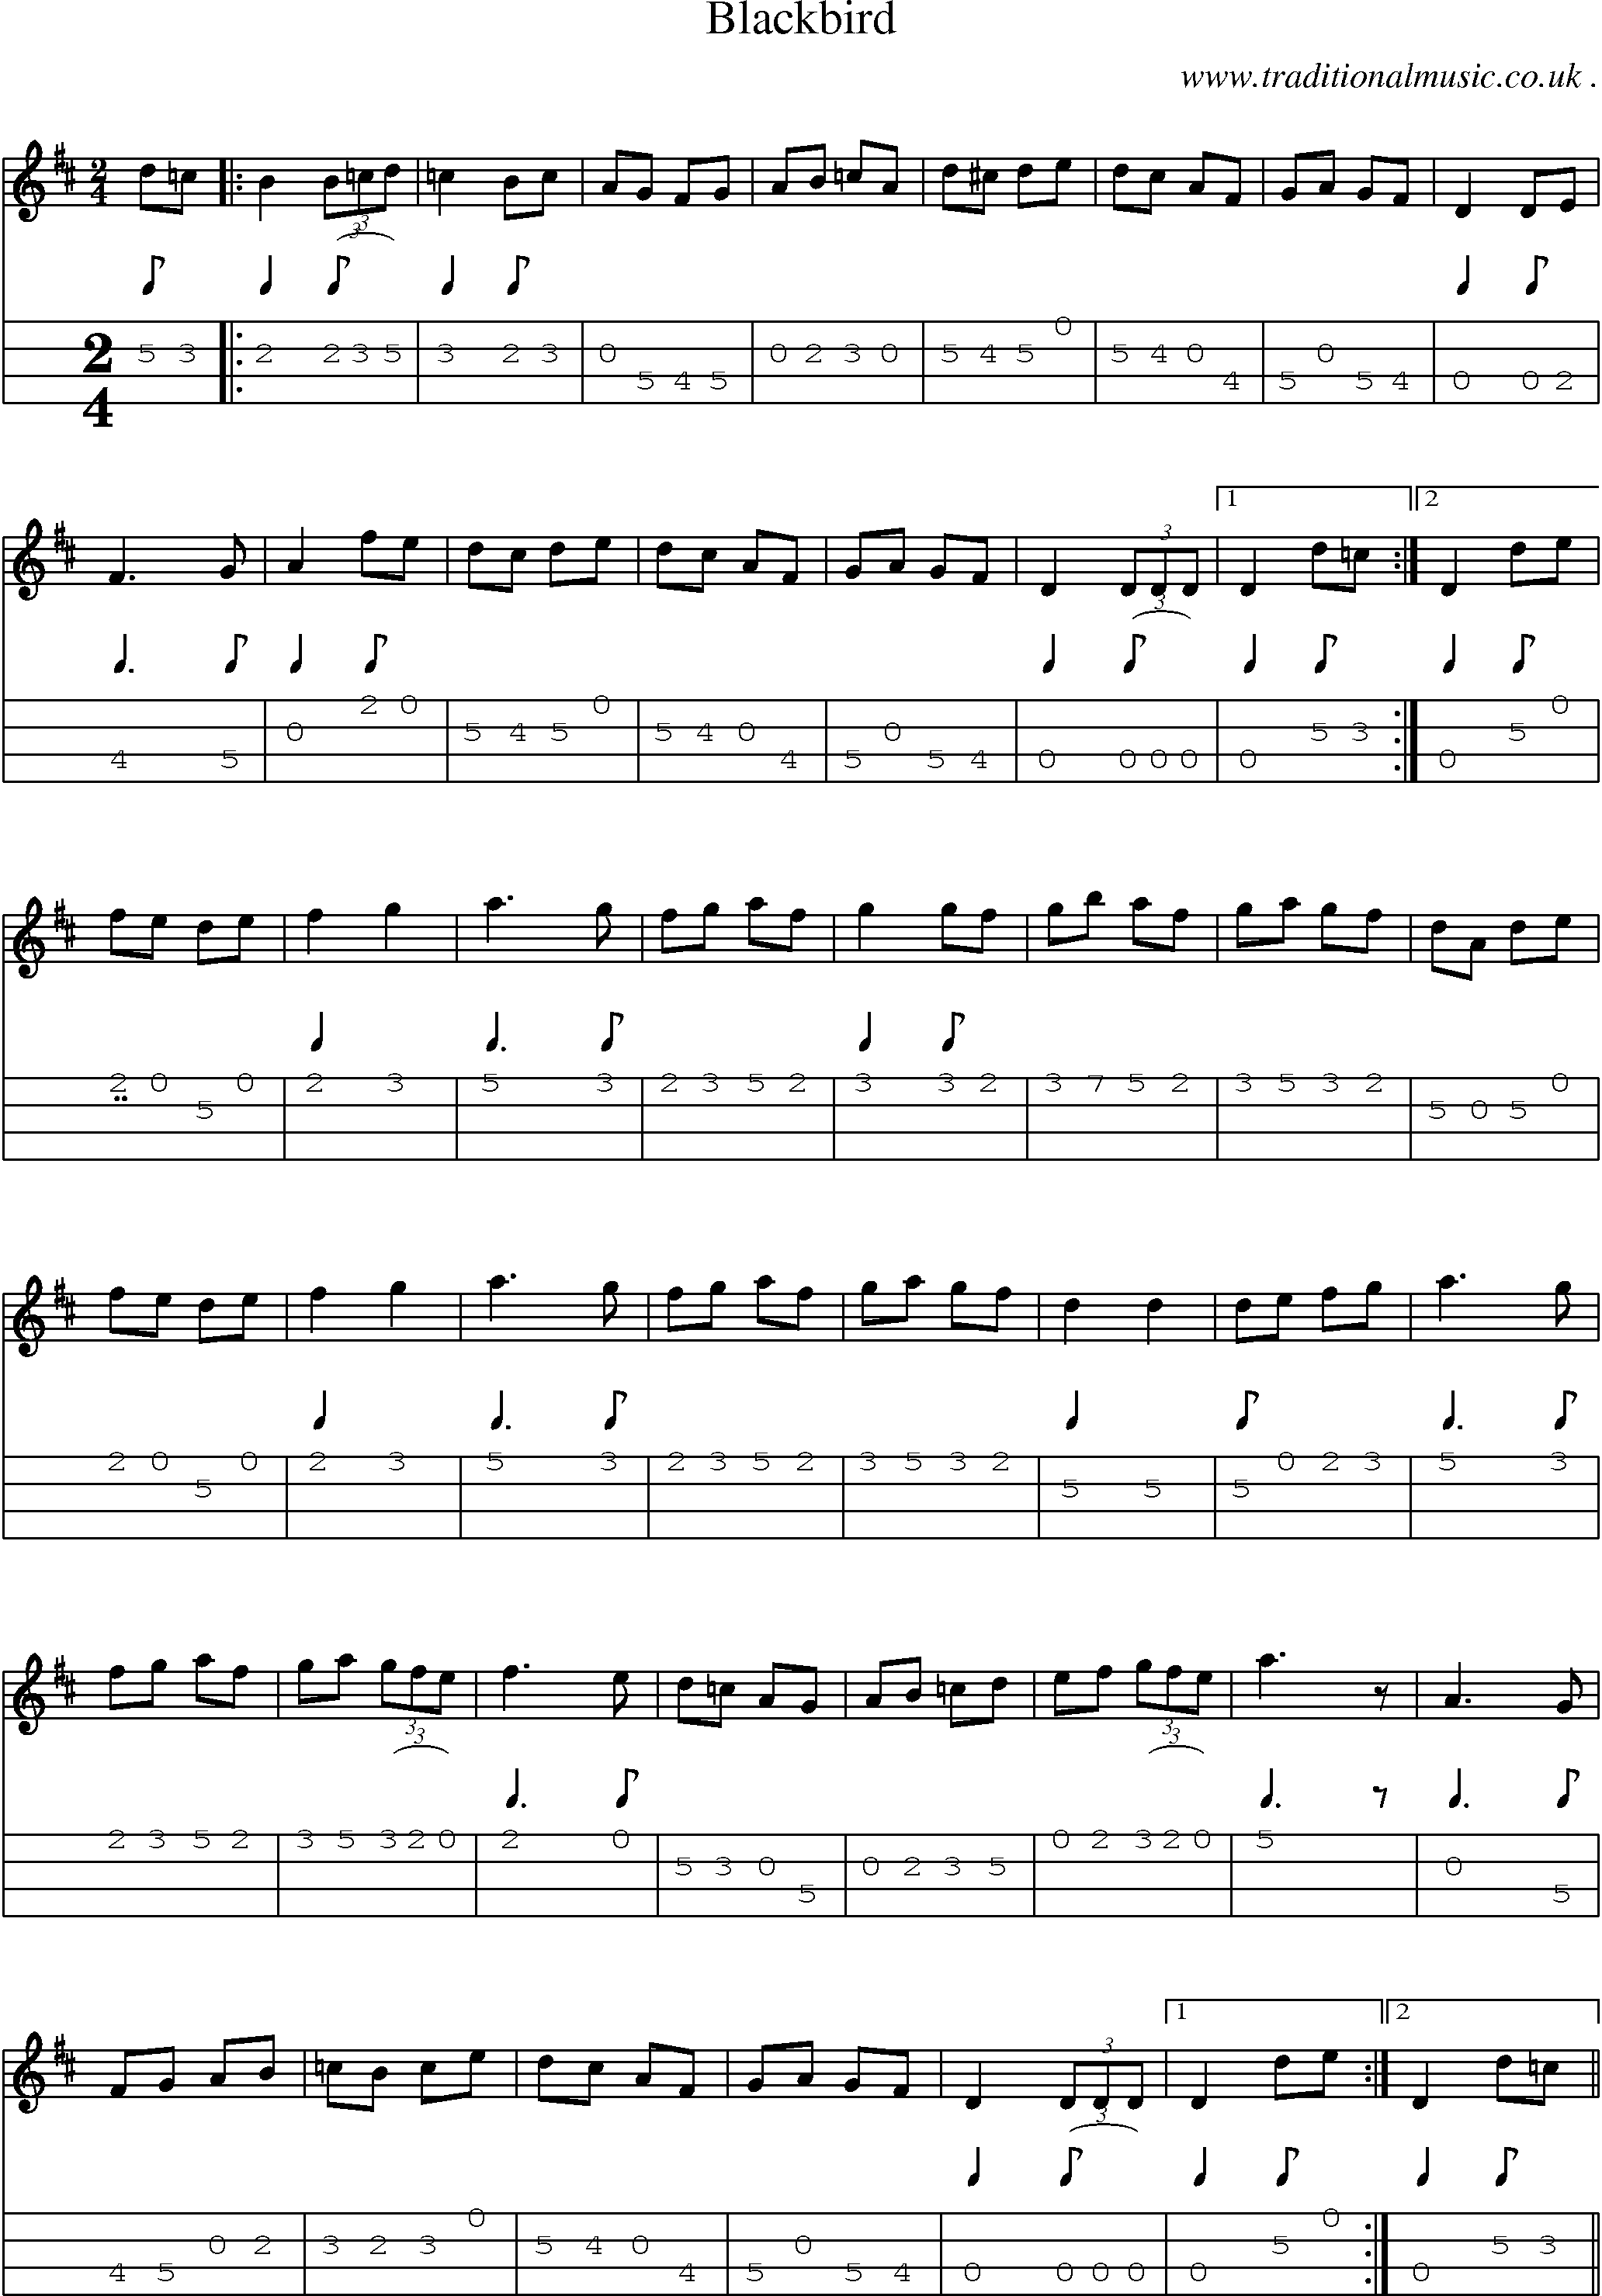 Folk and Traditional Music, Sheet-Music, Mandolin tab, midi, mp3 and PDF for: Blackbird